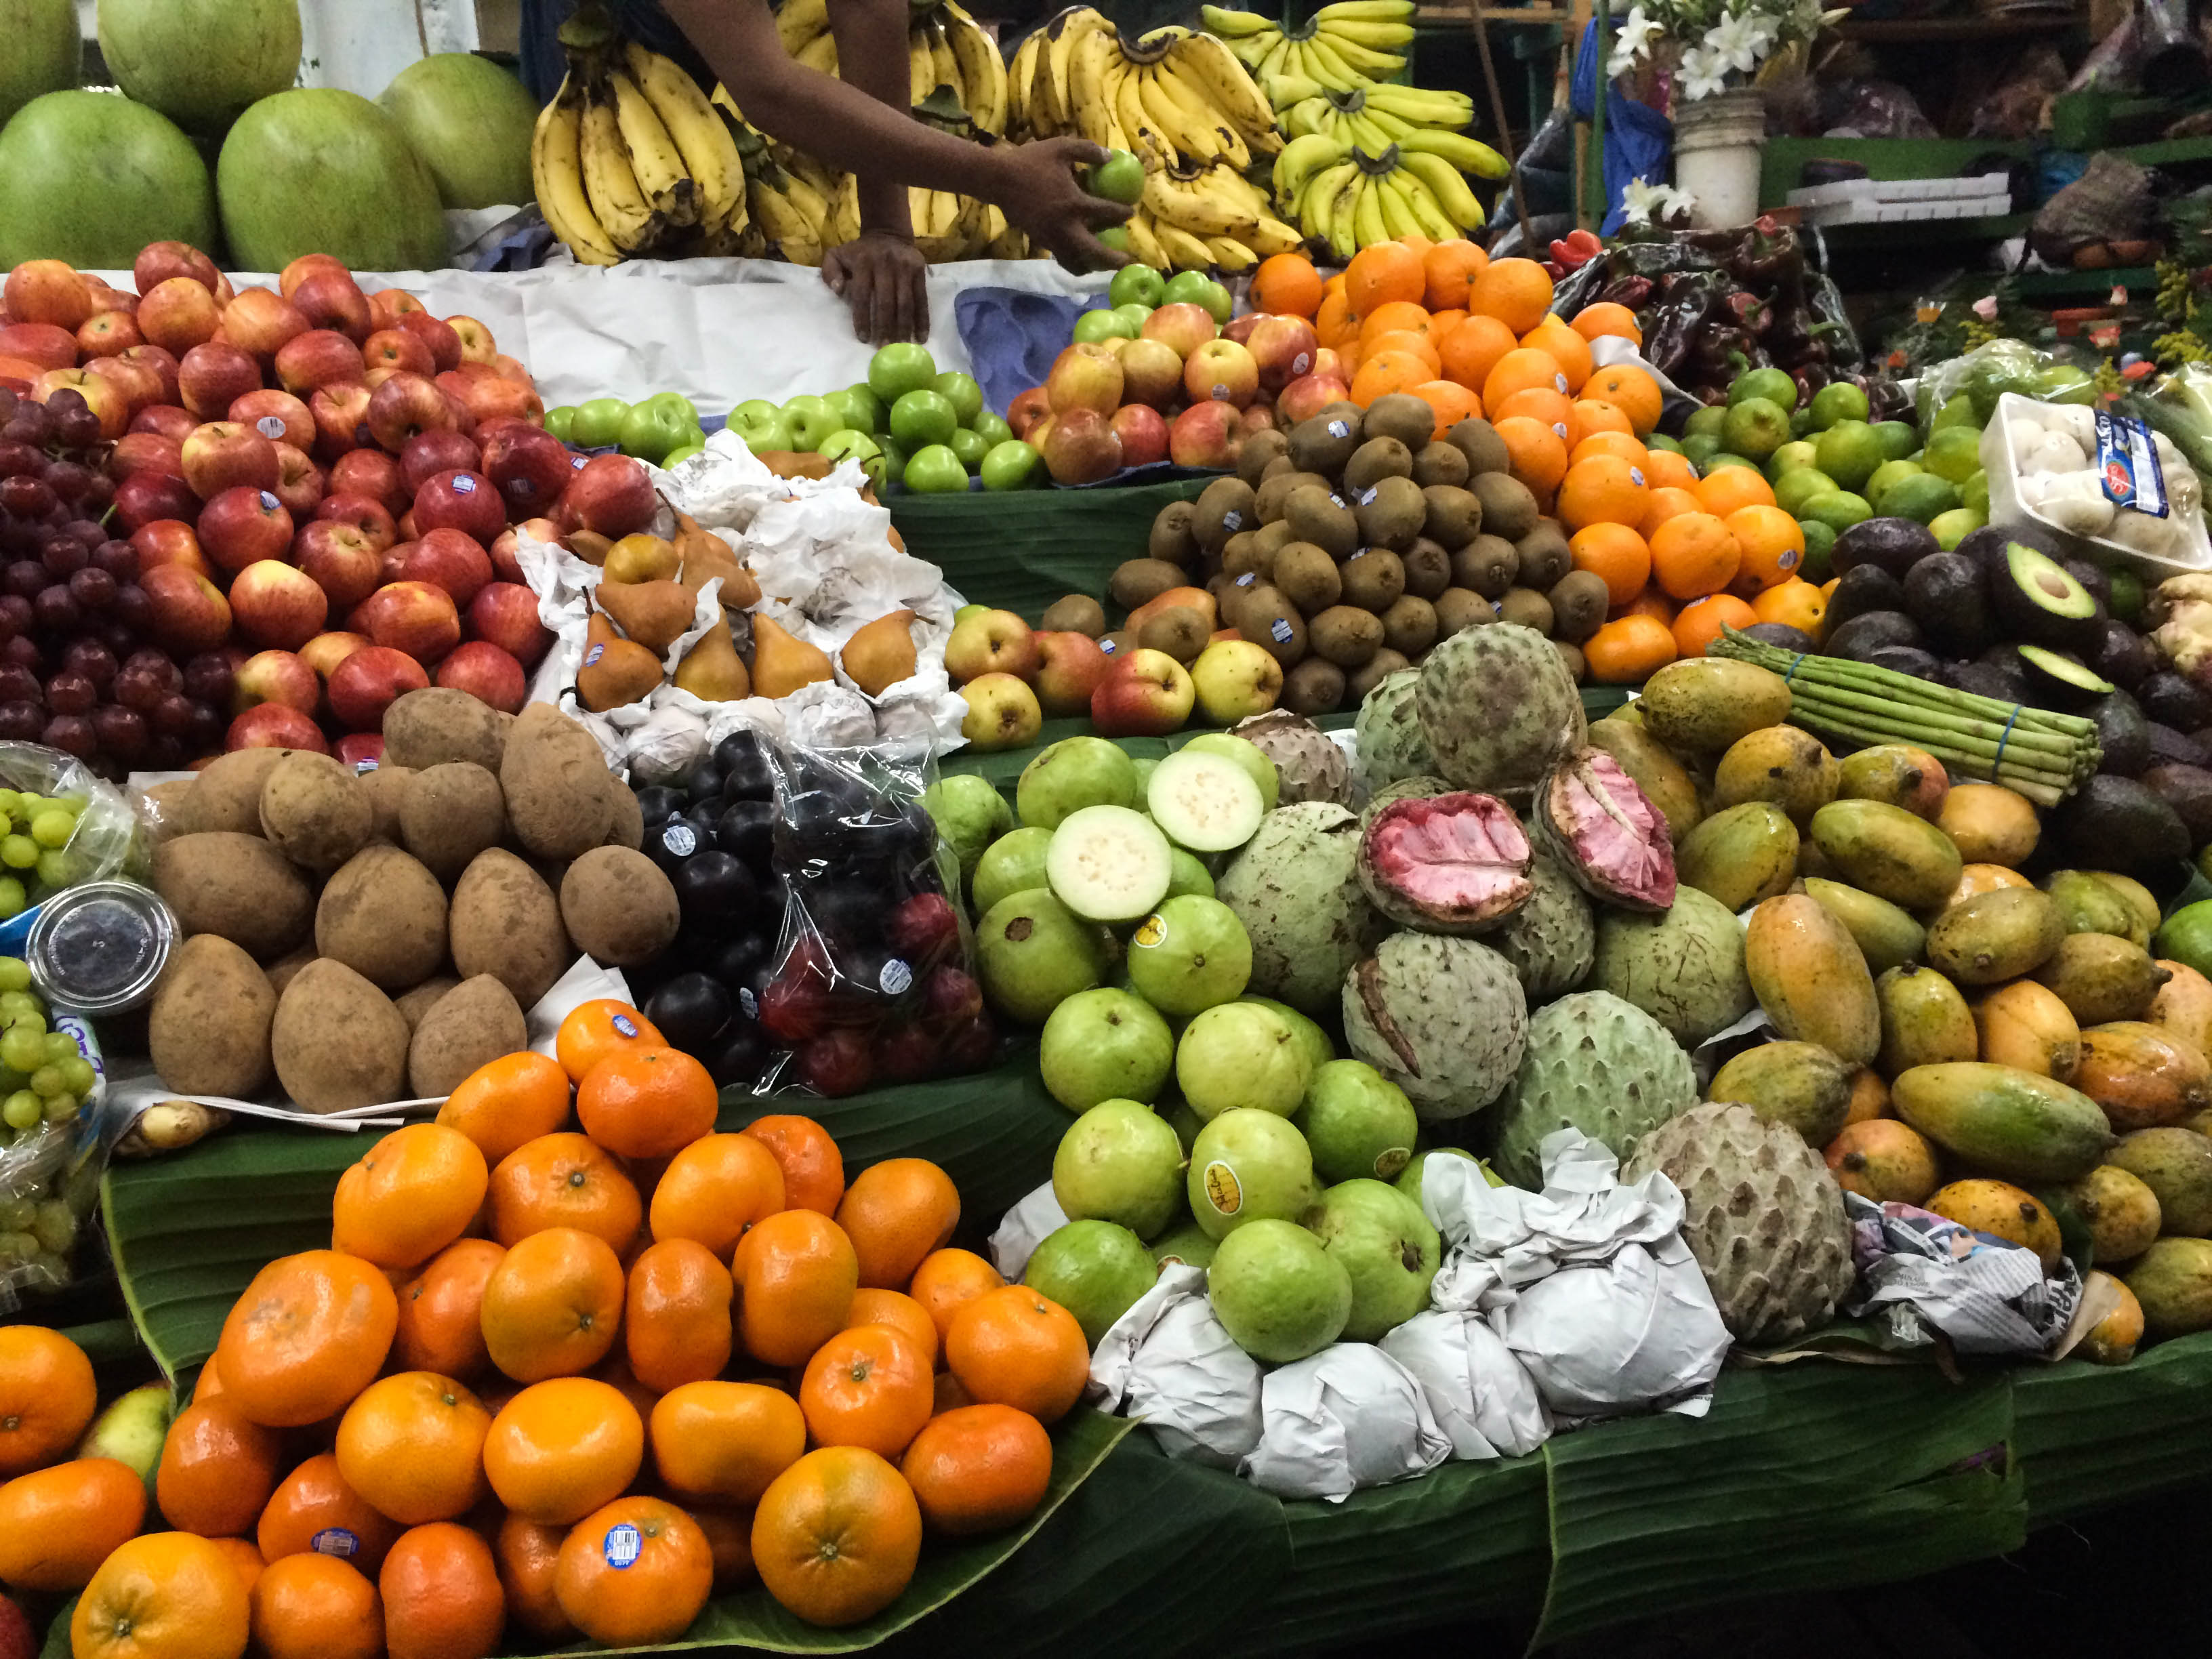 If you're looking to eat cheaply on your trip, here are some great ways to eat on a budget while traveling!